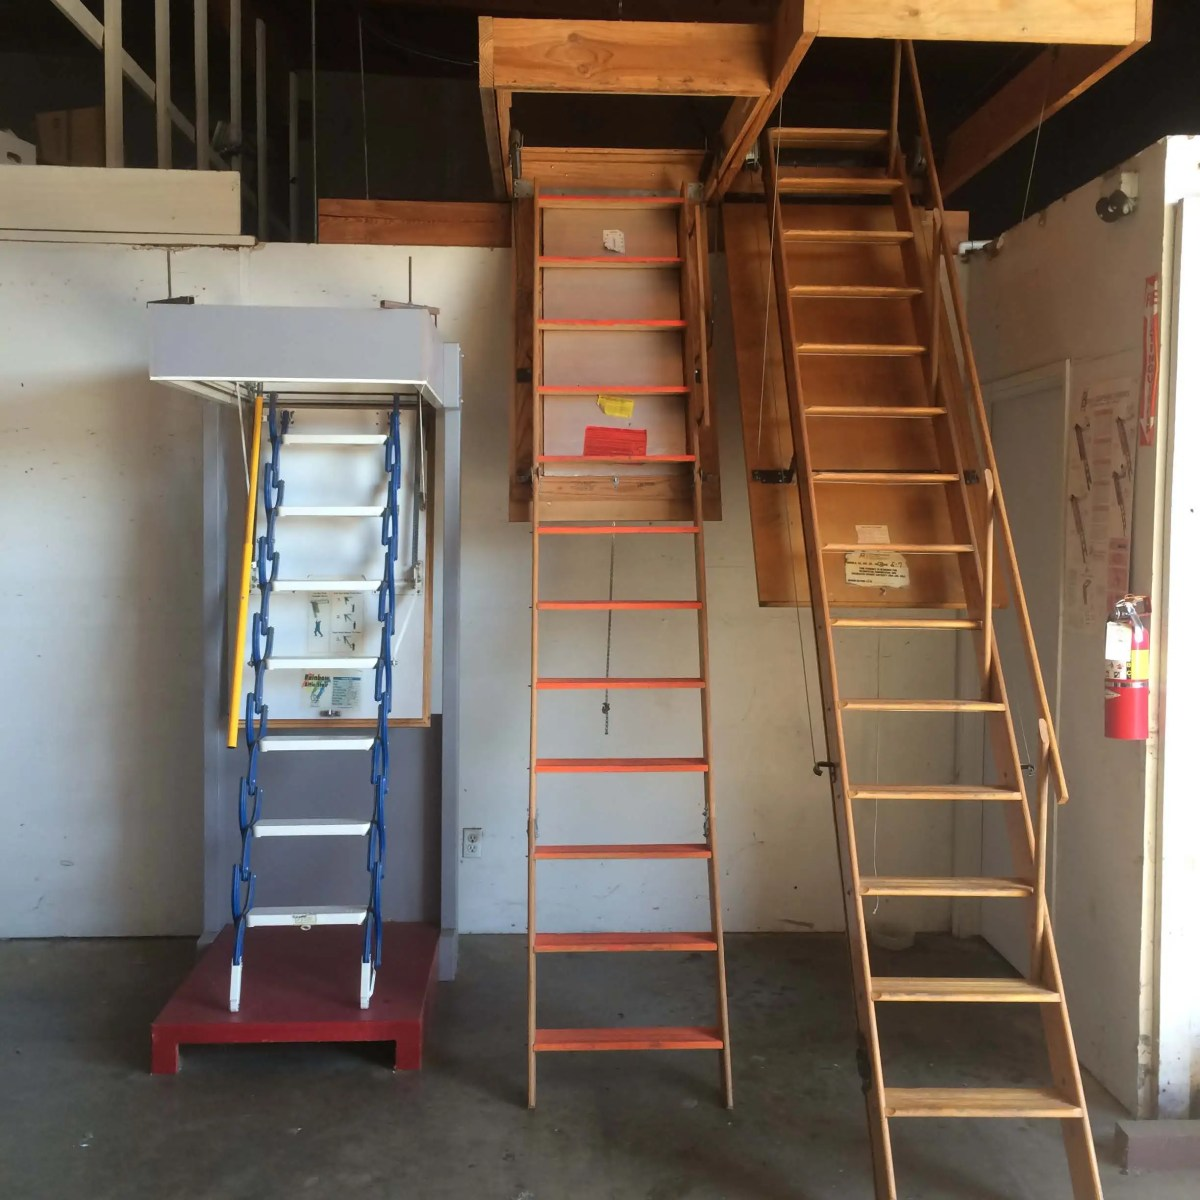 Attic Ladders, Fire Rated Attic Ladders, Attic Ladders Sacramento, Attic Ladders San Jose, Attic Ladders Bay Area